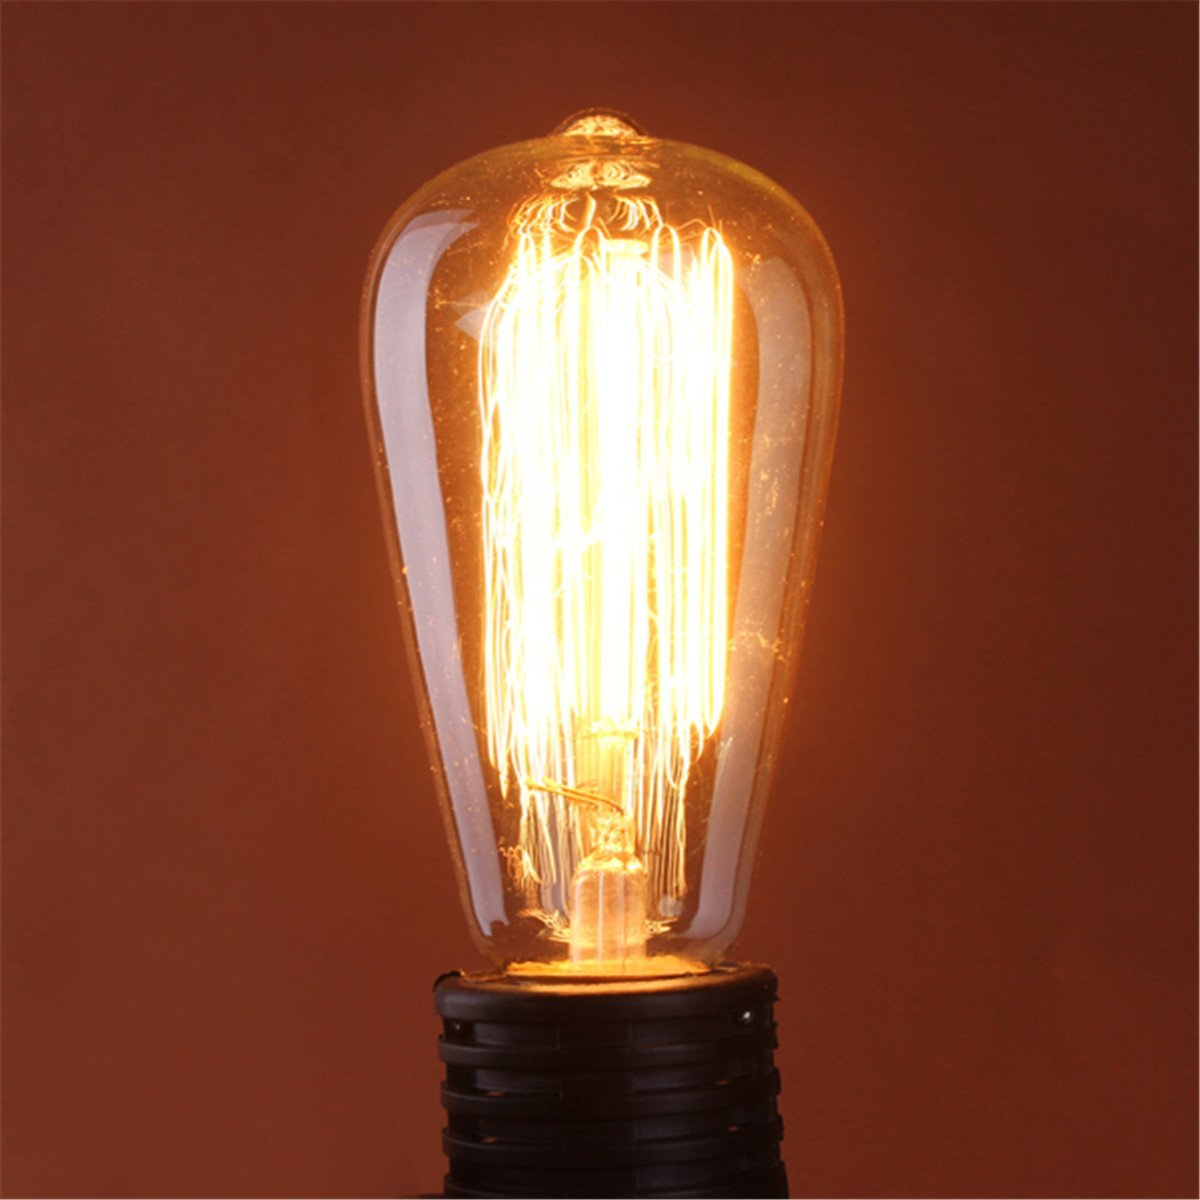 60w filament light bulb vintage unique designer old fashioned j6g. Black Bedroom Furniture Sets. Home Design Ideas